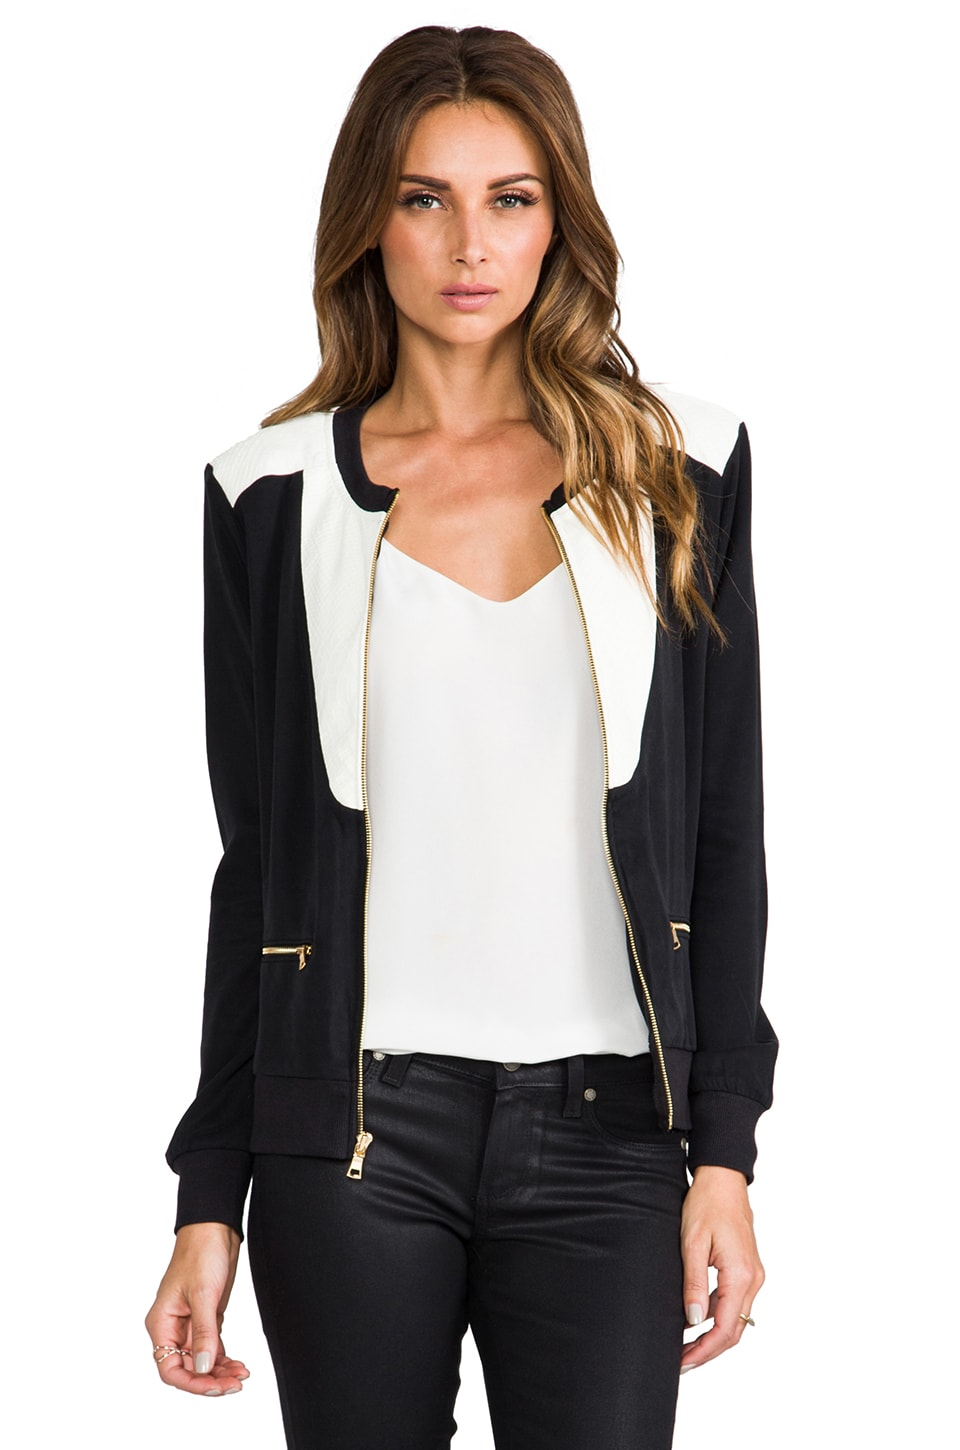 TOWNSEN Carmen Jacket in Black/White